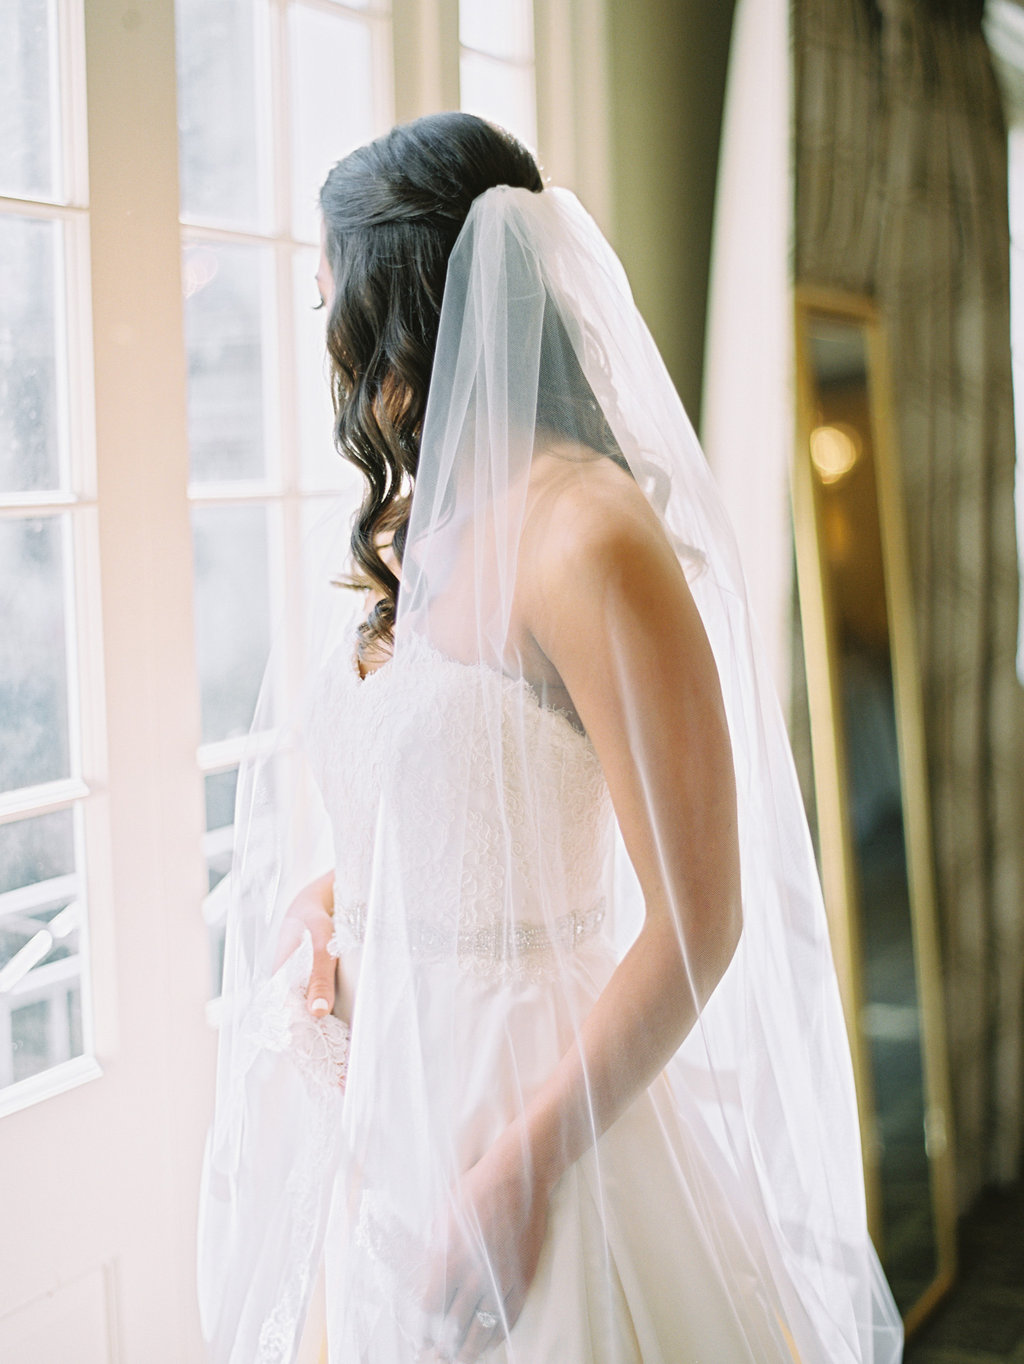 White bridal gown with a beaded gown, and a long sheer veil going down the brides back